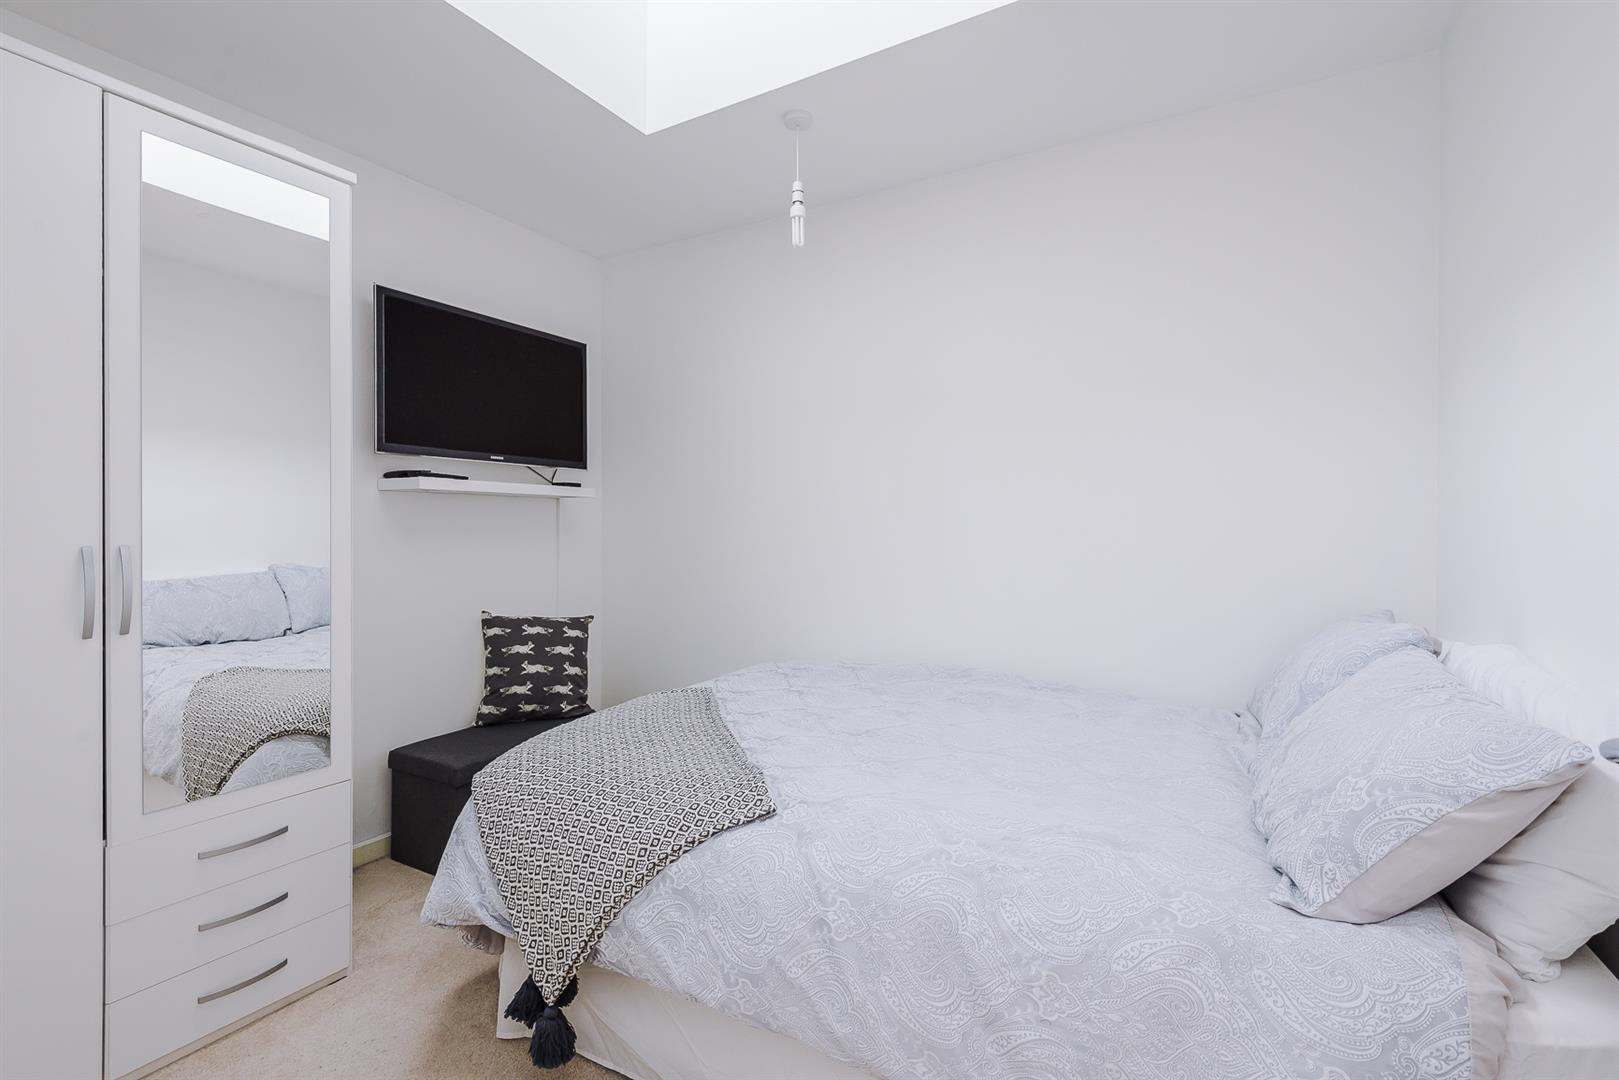 2 Bedroom Apartment For Sale Image 14